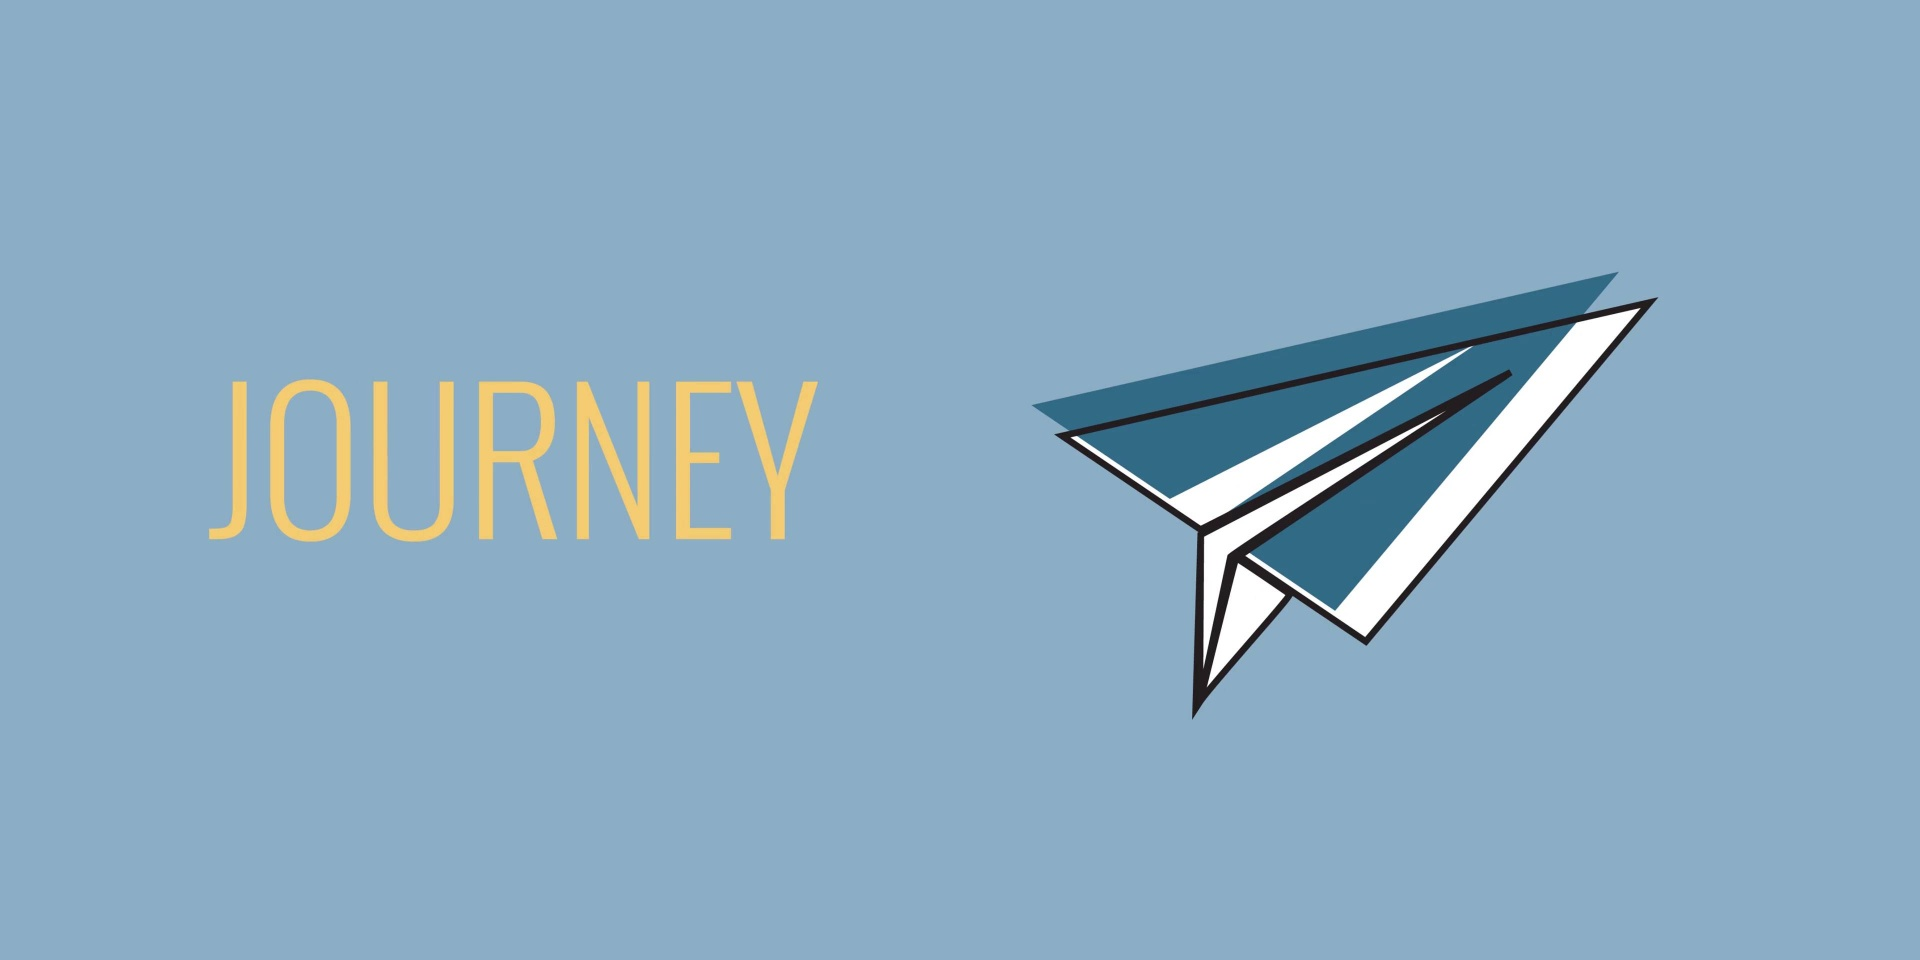 Wistia video thumbnail - Journey